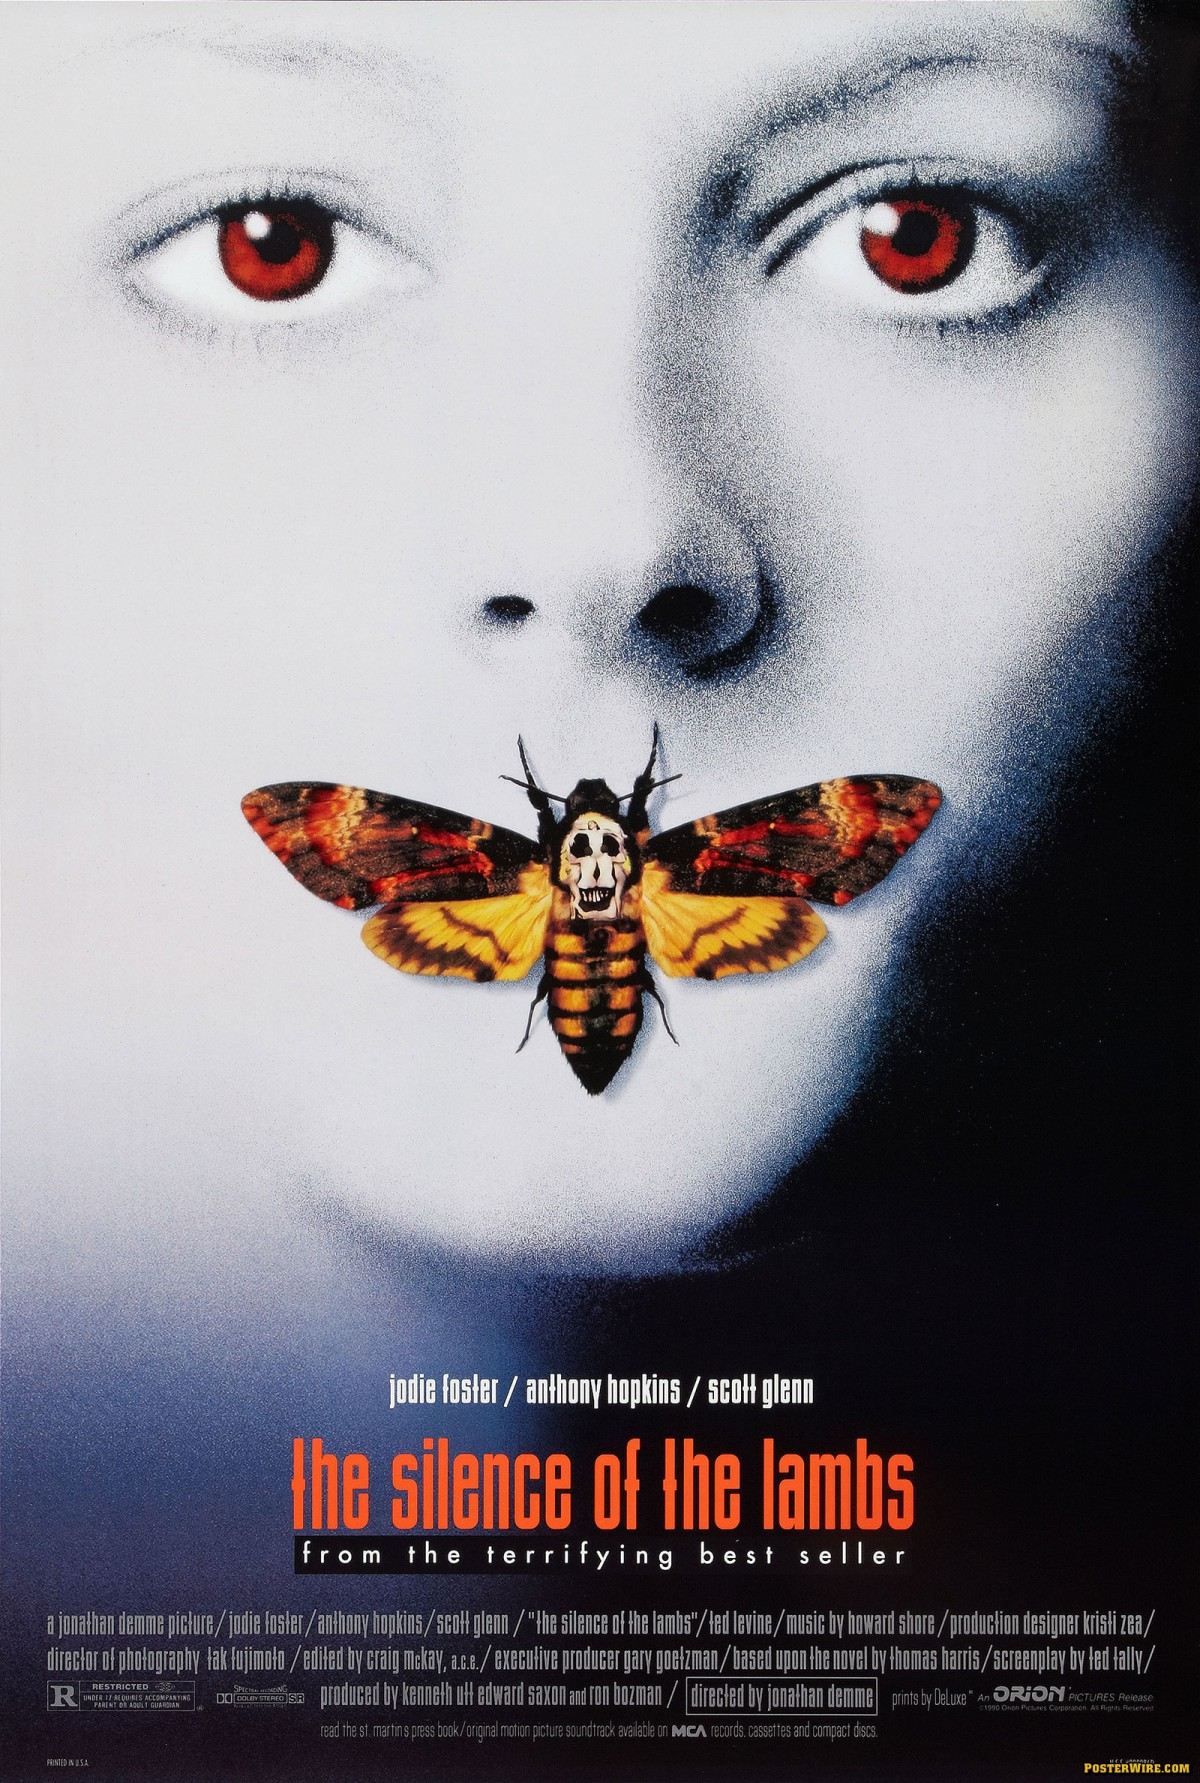 3. The Silence of the Lambs (1991)